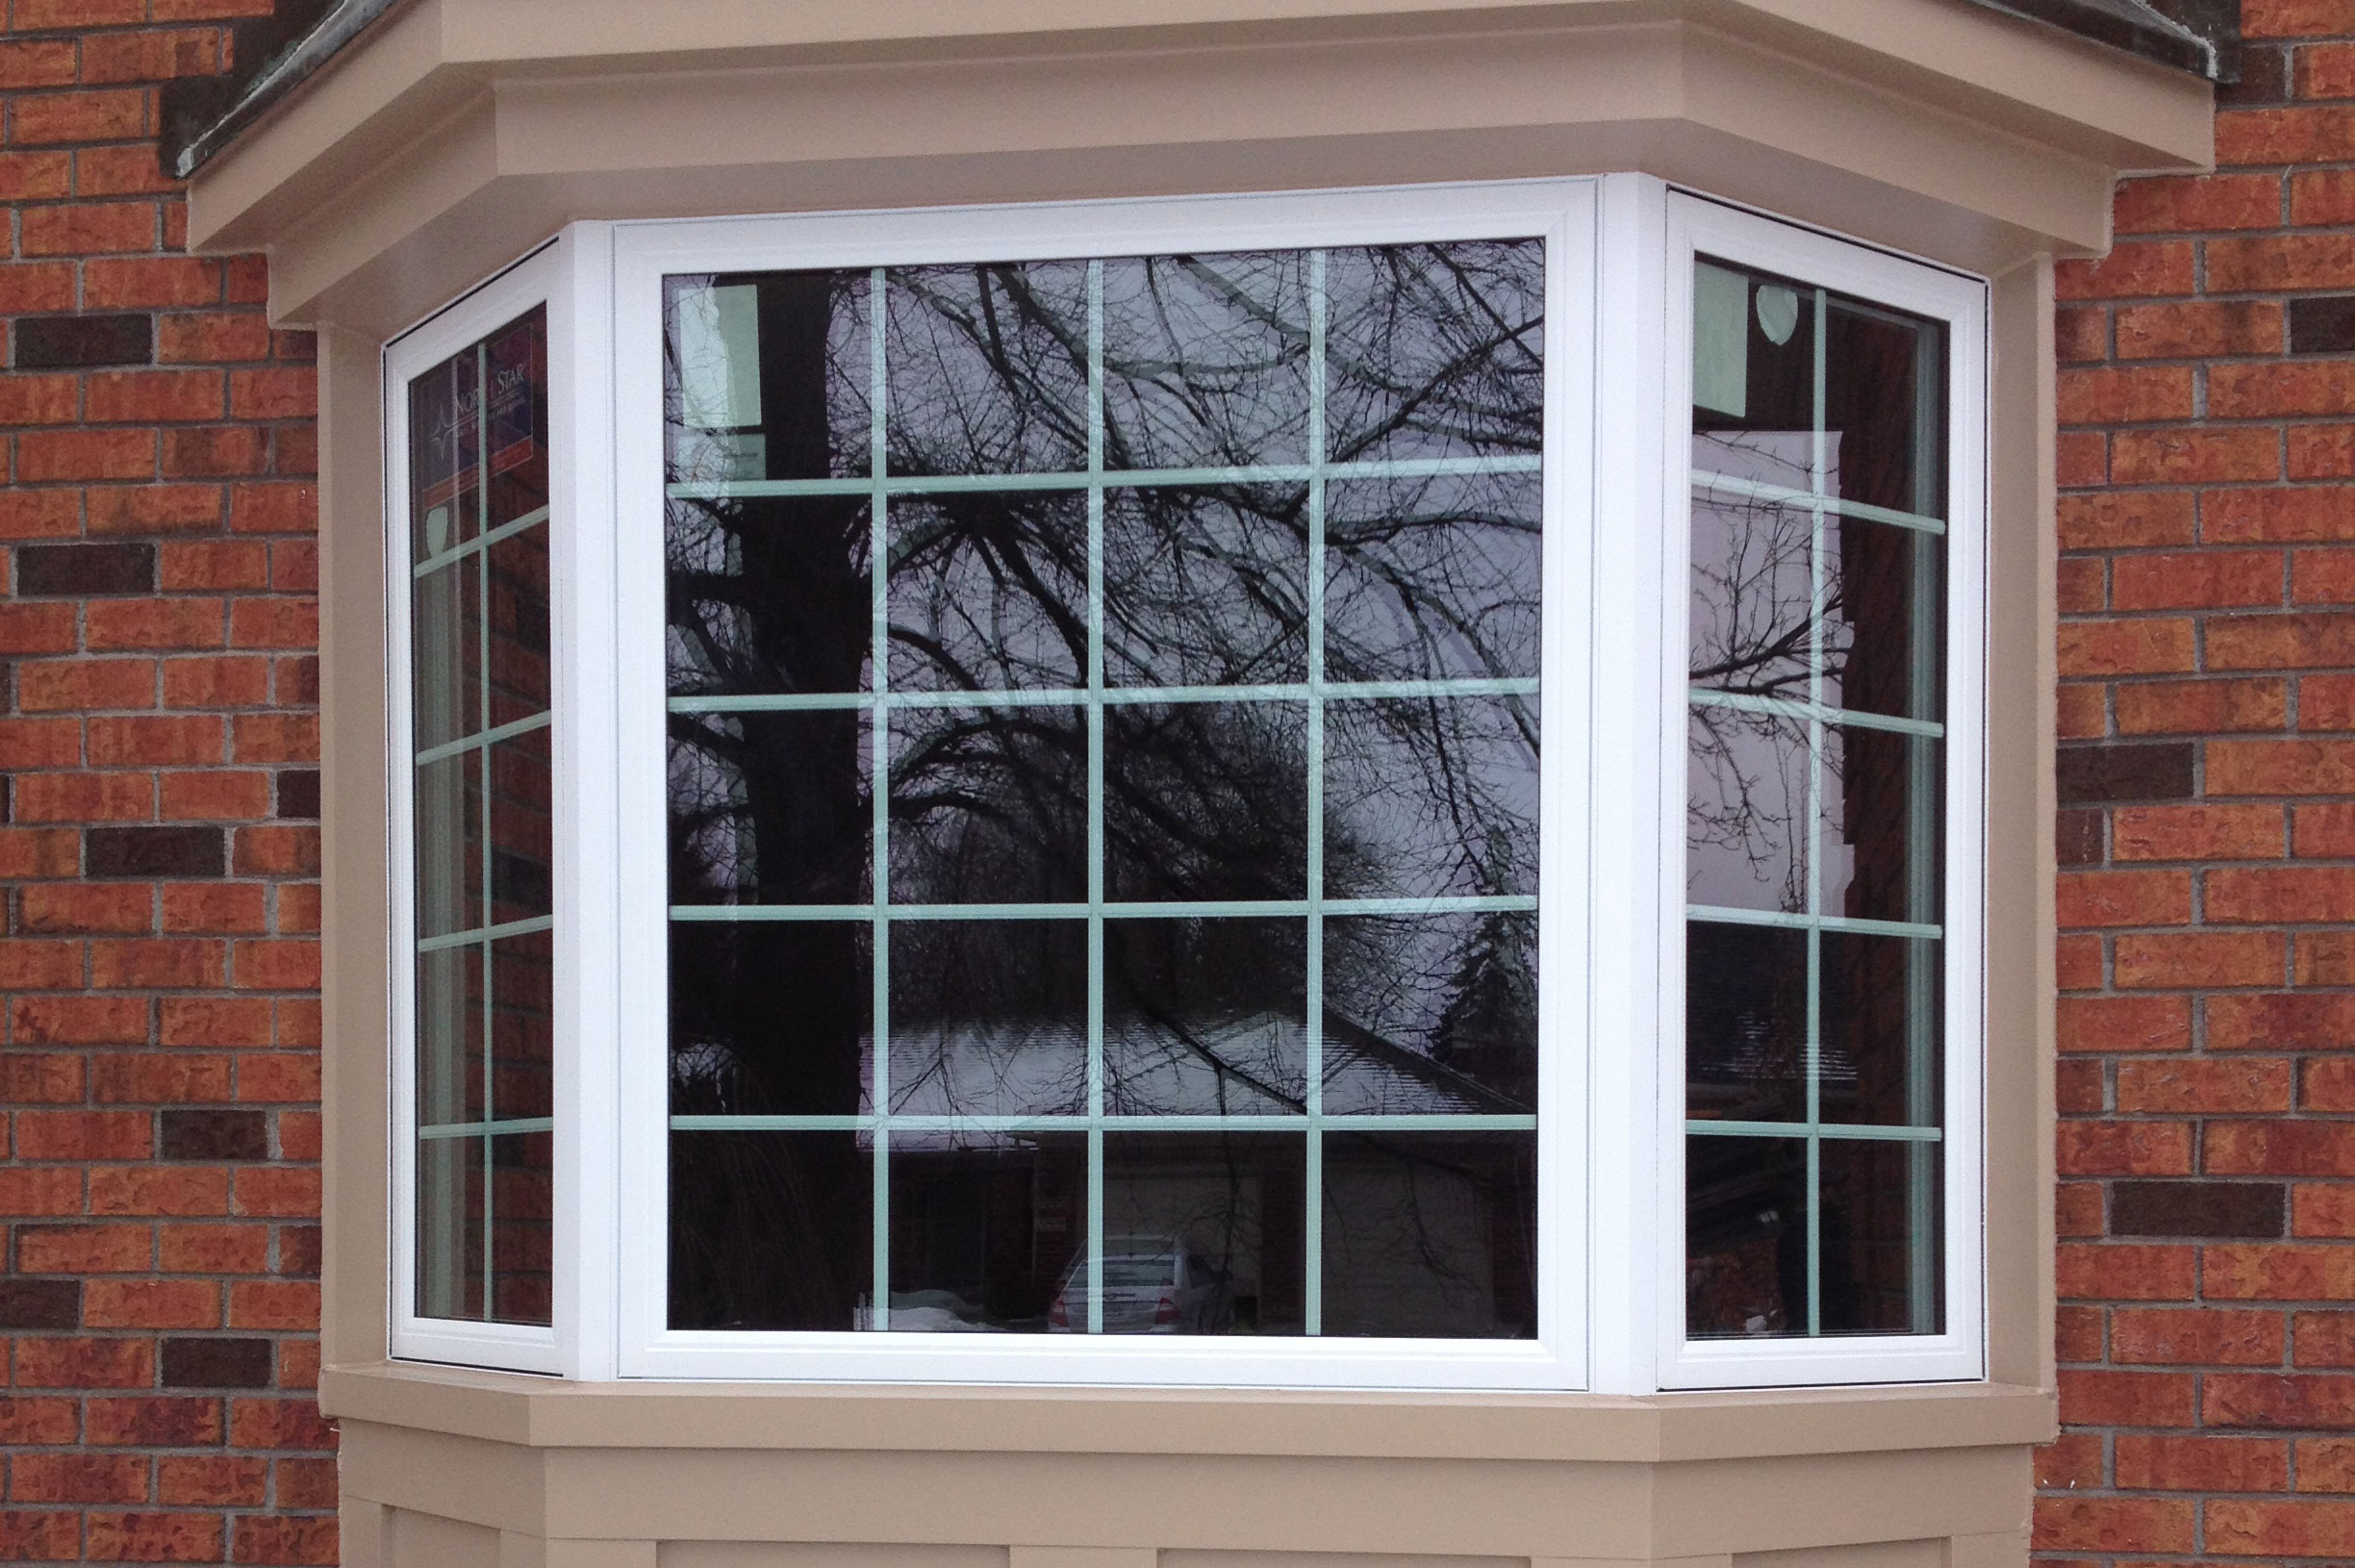 3 Lite Bay Window With Grids